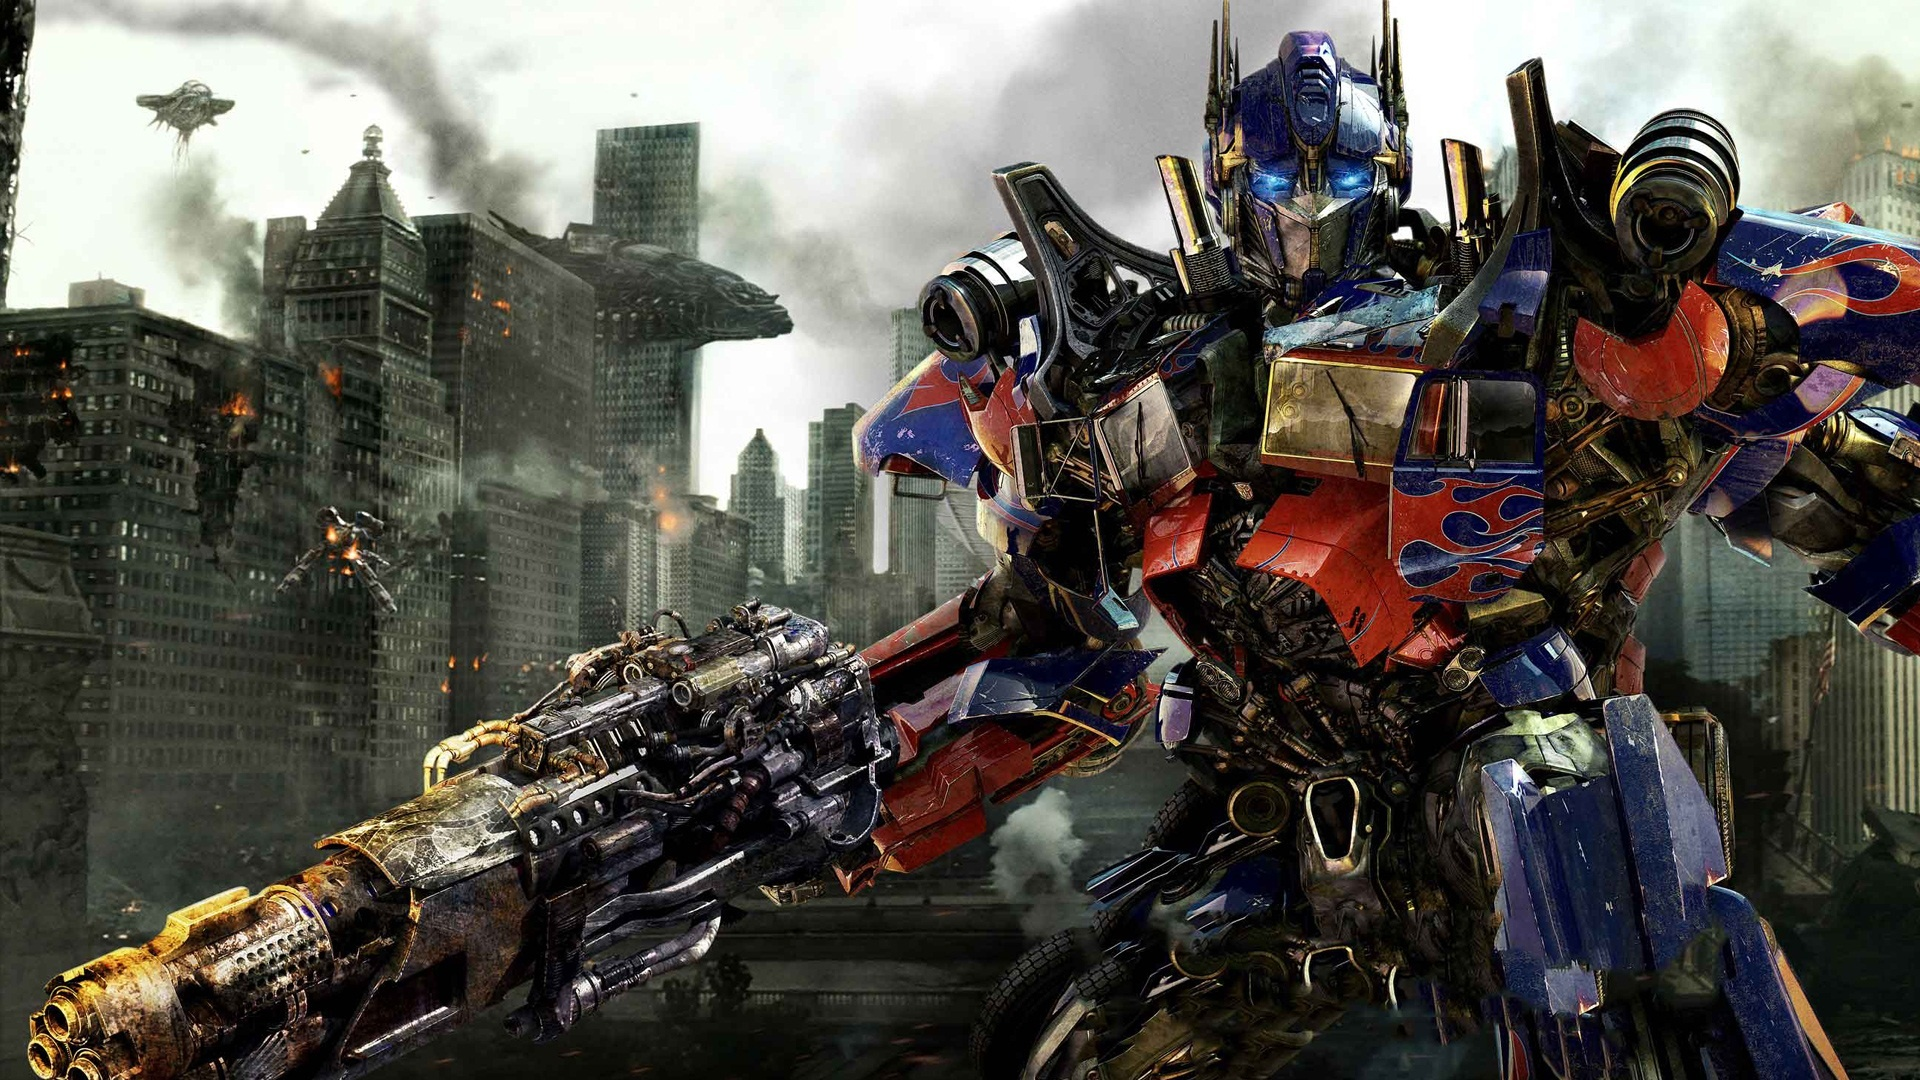 48 ] Transformers Prime Wallpapers For Puter On